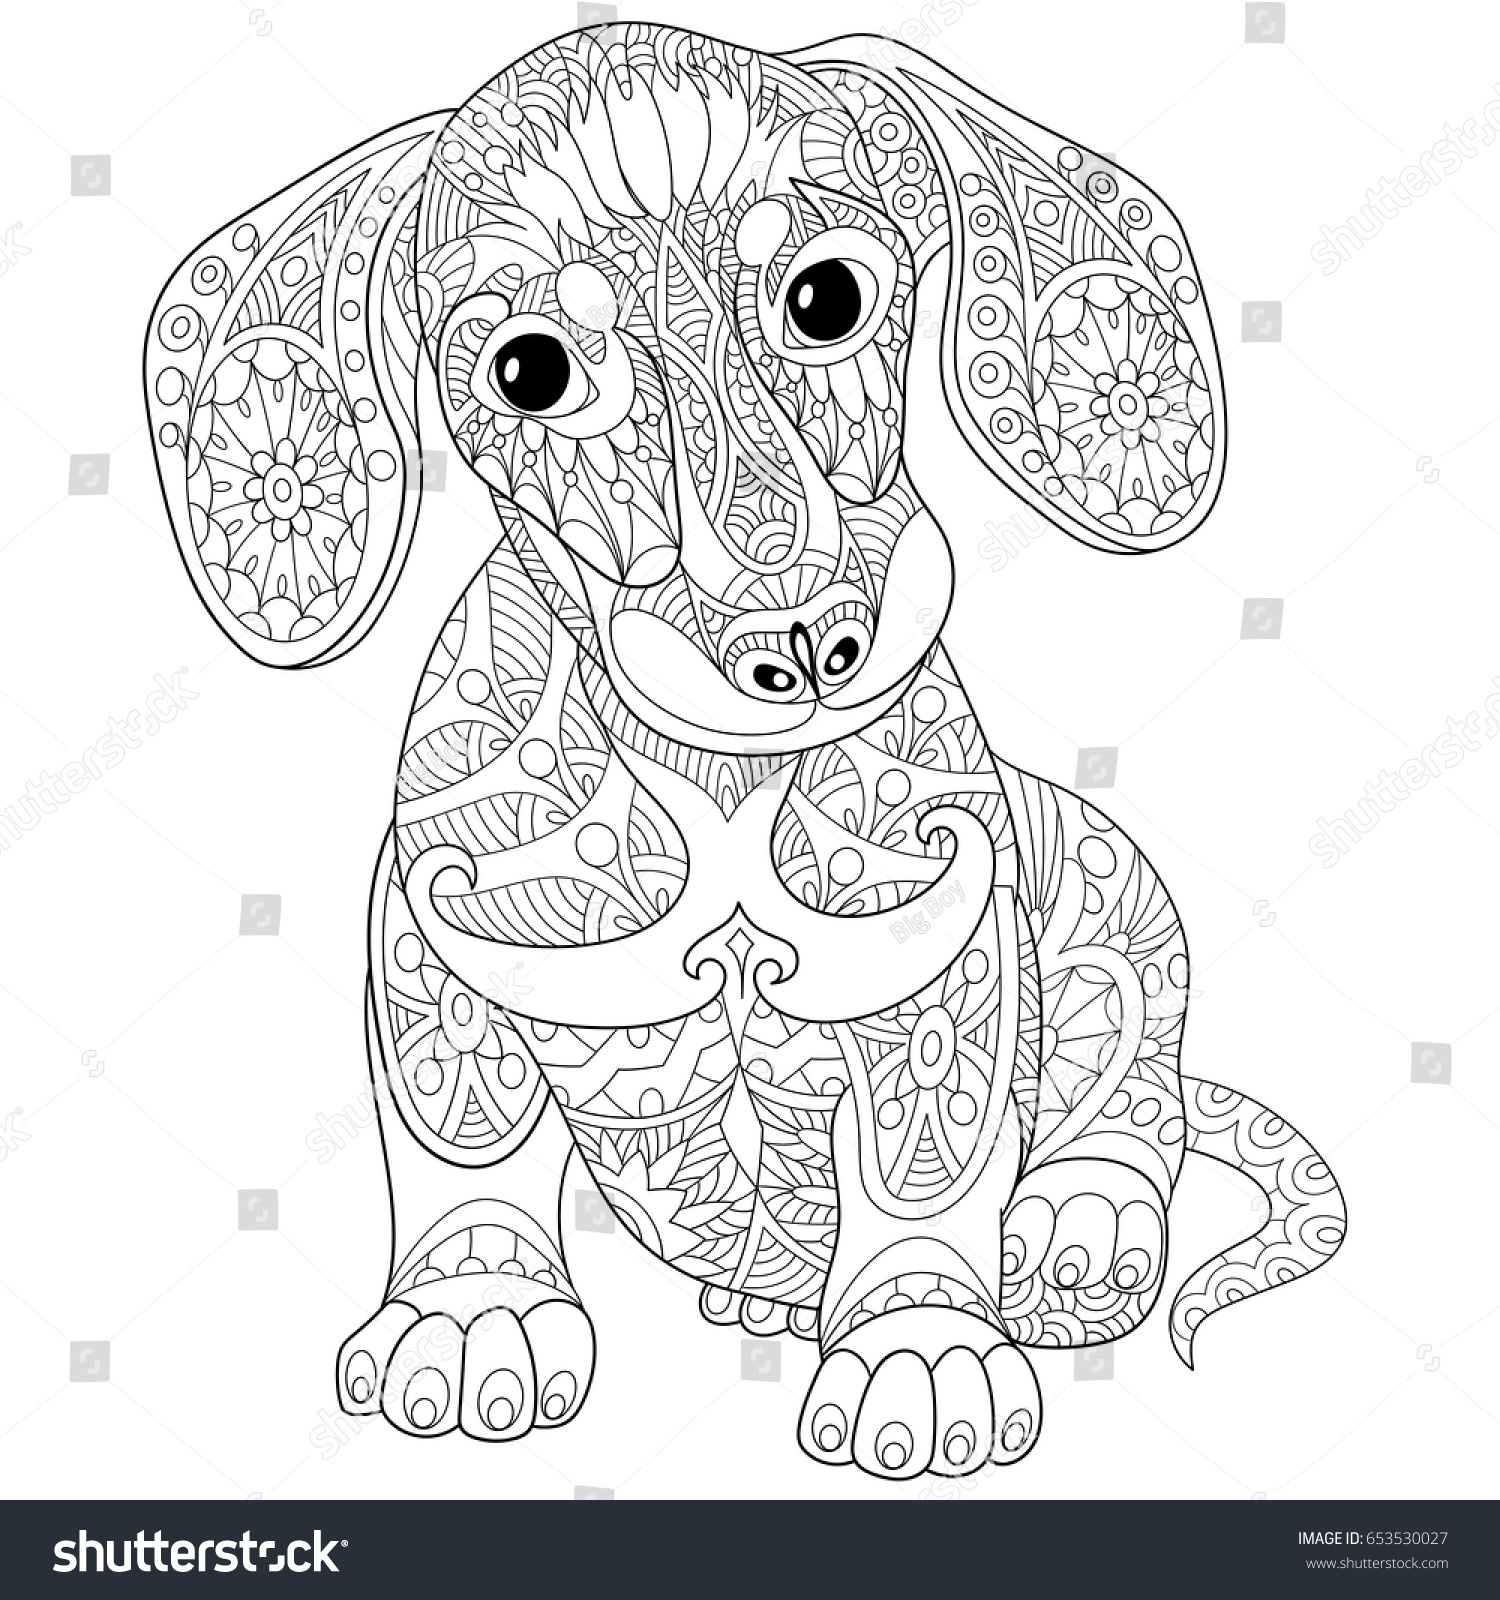 Https Www Shutterstock Com Cs Image Vector Coloring Page Dachshund Puppy Dog Symbol 653530027